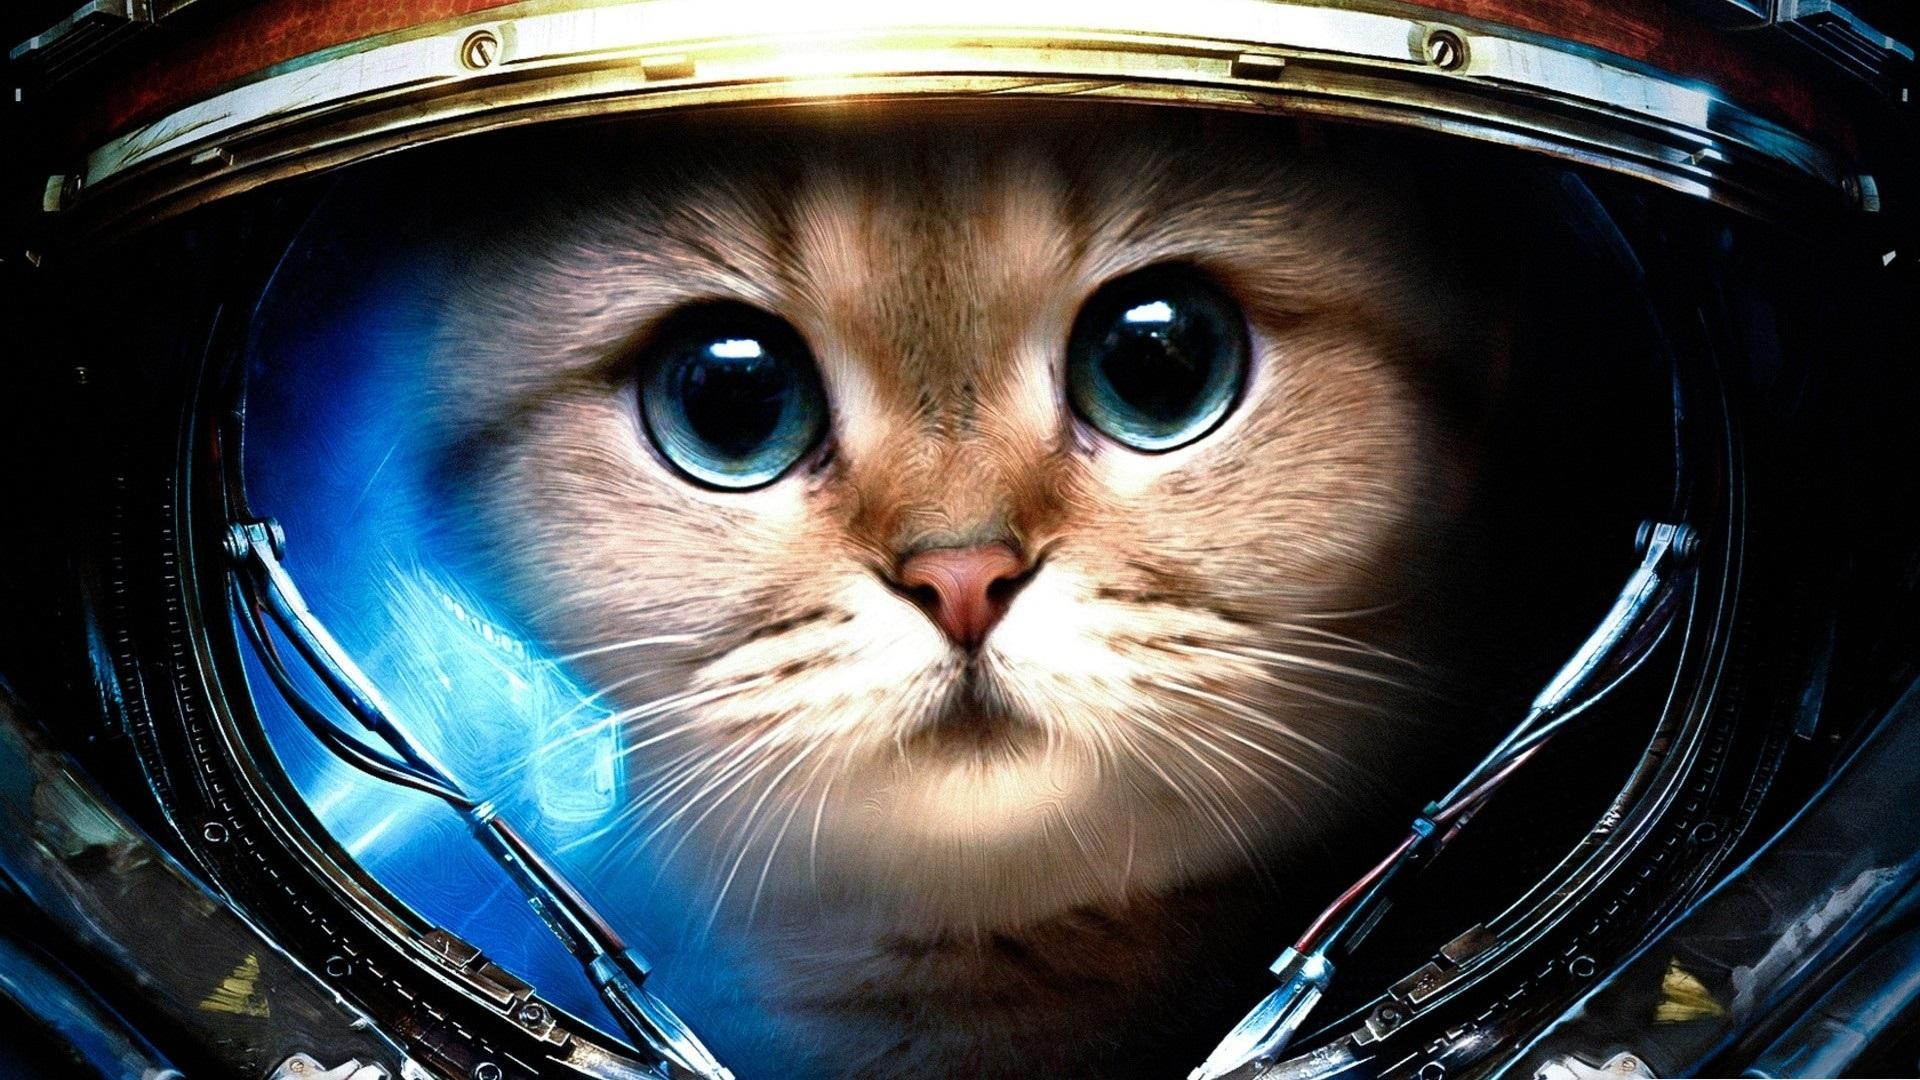 Catcraft Ii Paws Of Liberty Imgur Comment Just What Do You Think You Are Doing Dave Hal9000 Meow Questionab Astronaut Cat Space Cat Cat Wallpaper